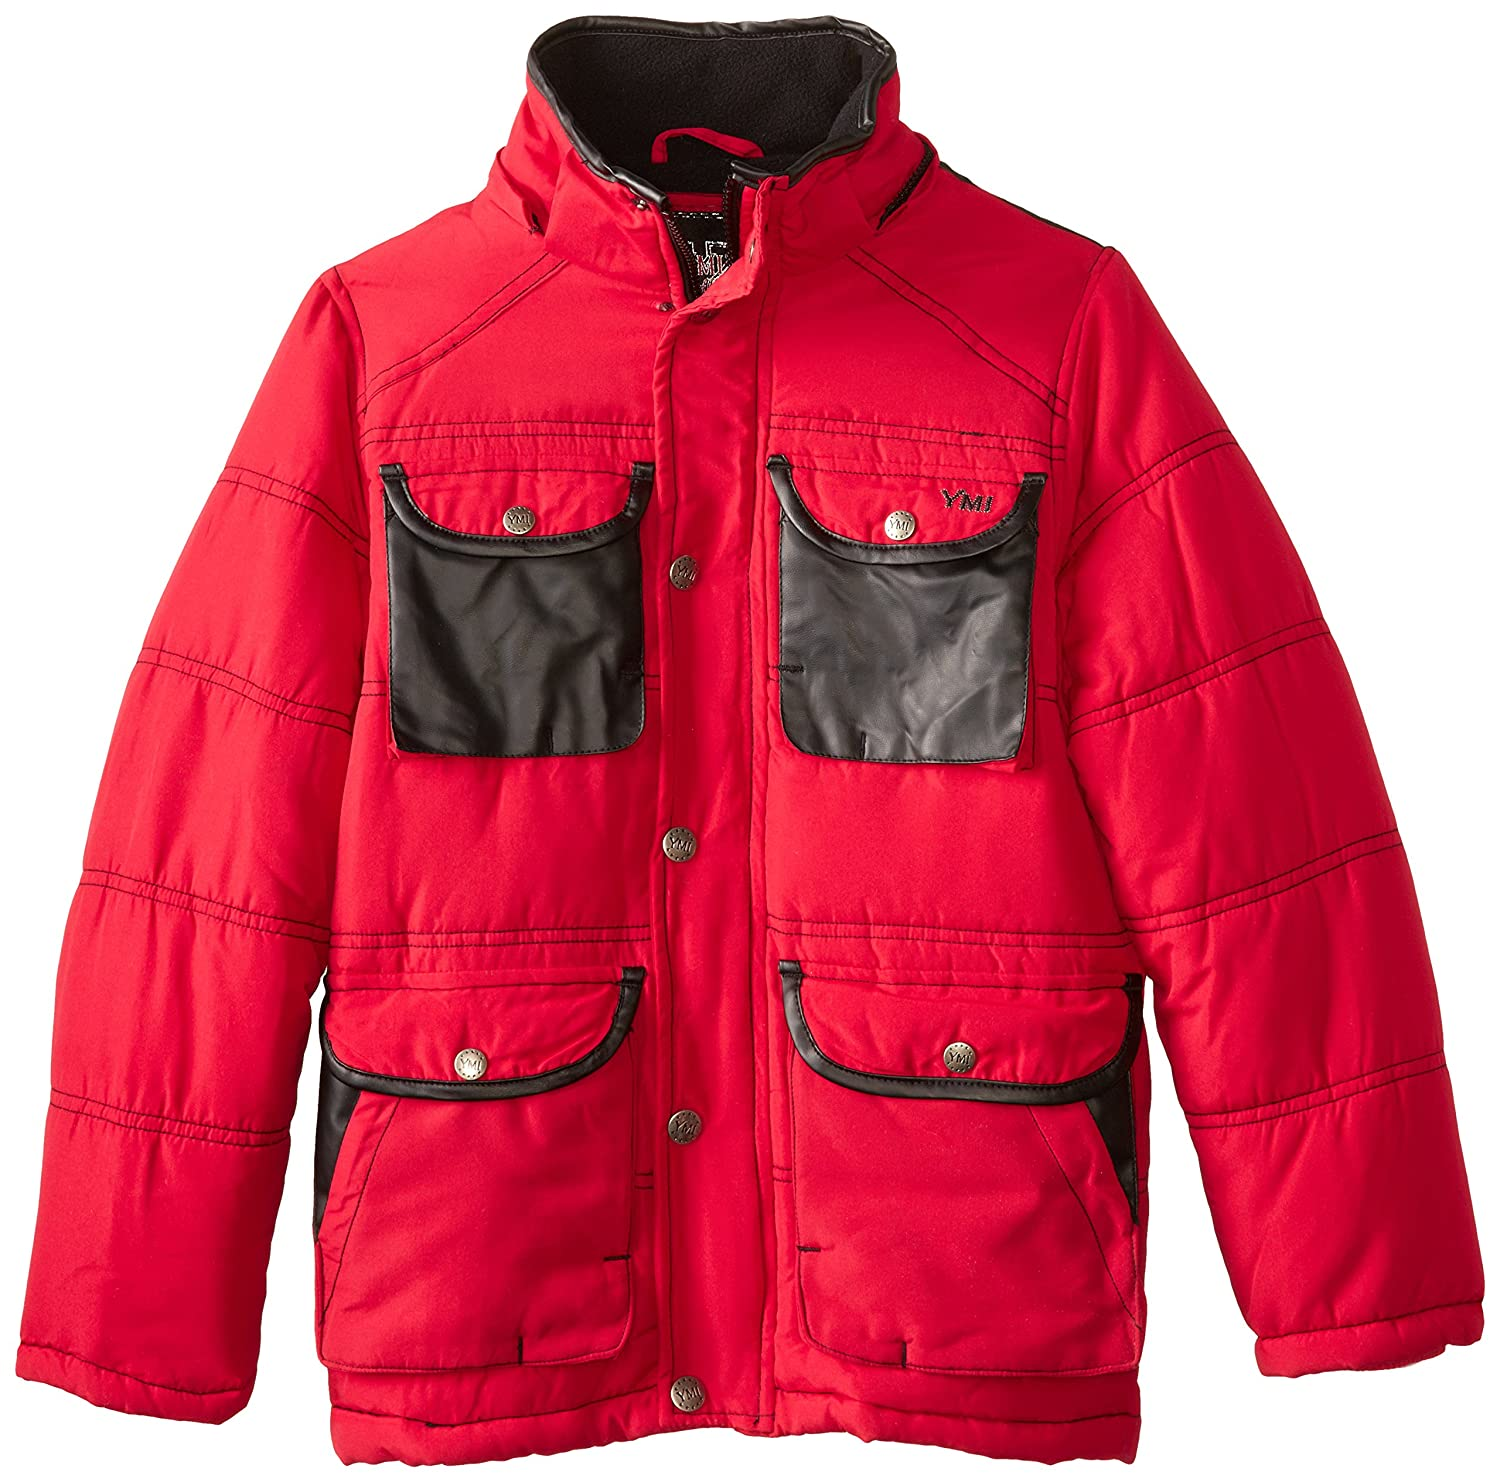 YMI Boys 8-20 Boys Hooded Jacket Bubble with Contrasting Pocket Red 18//20